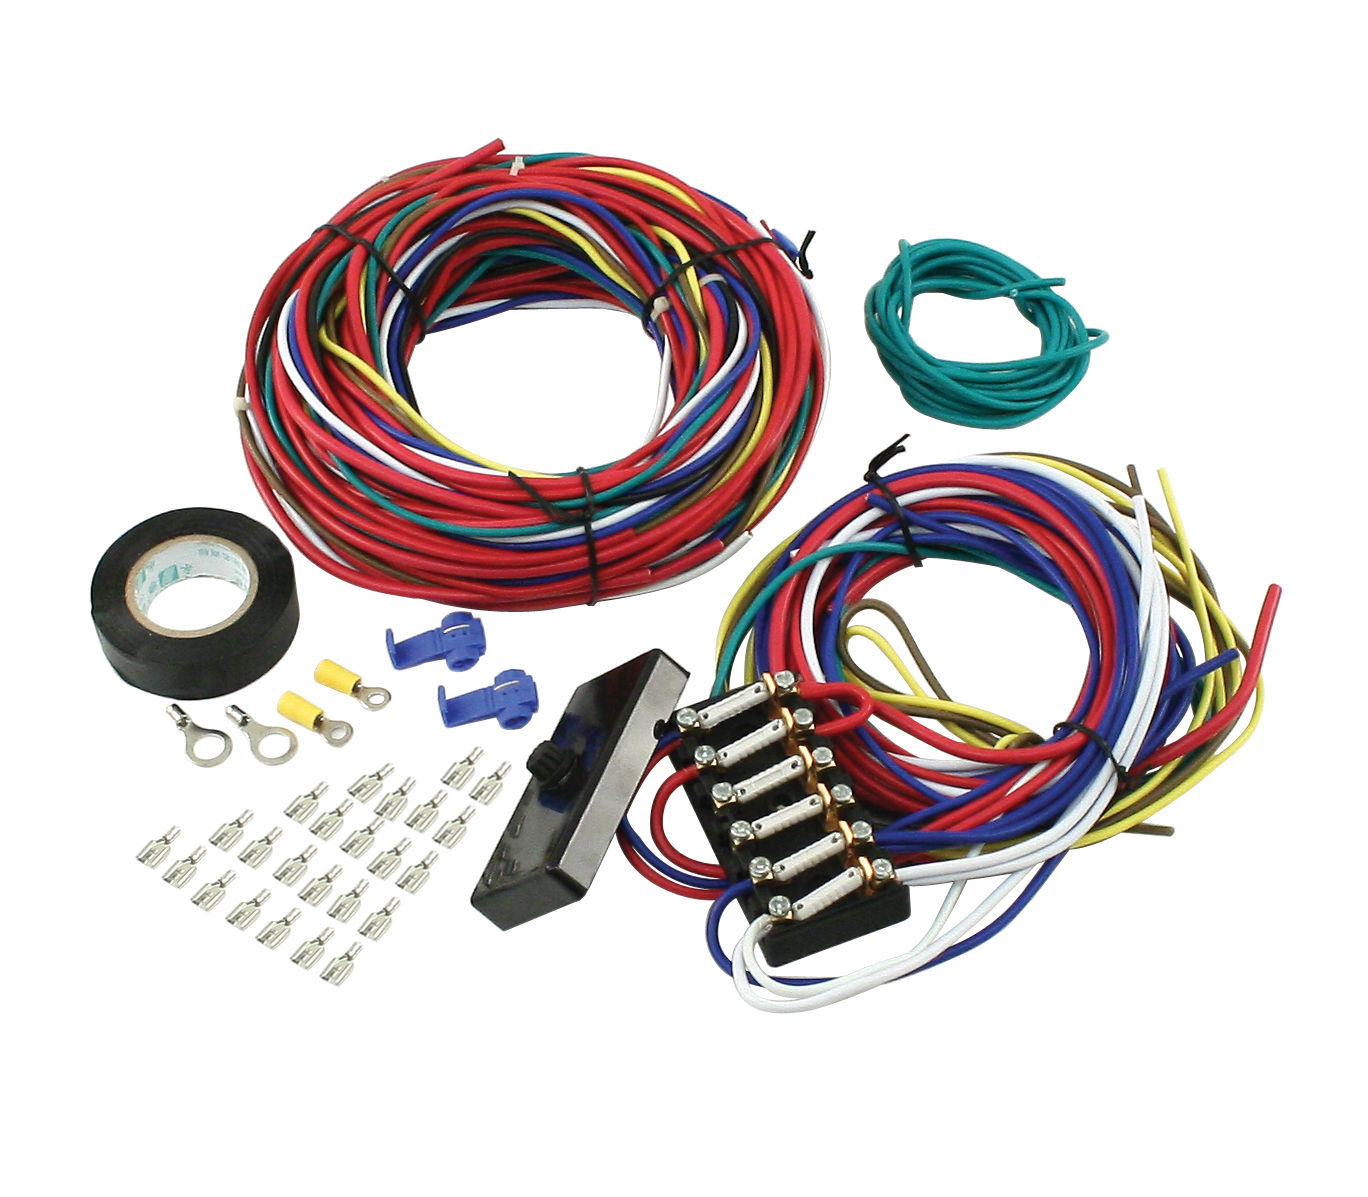 Empi Universal Wiring Harness Wiring  Diagram MSD 8860 Harness LED Wiring Harness 2014 Camaro Wiring Harness Diagram Data Hot Rod Circuit Universal Wiring Harness 8 Universal Trailer Wiring Harness